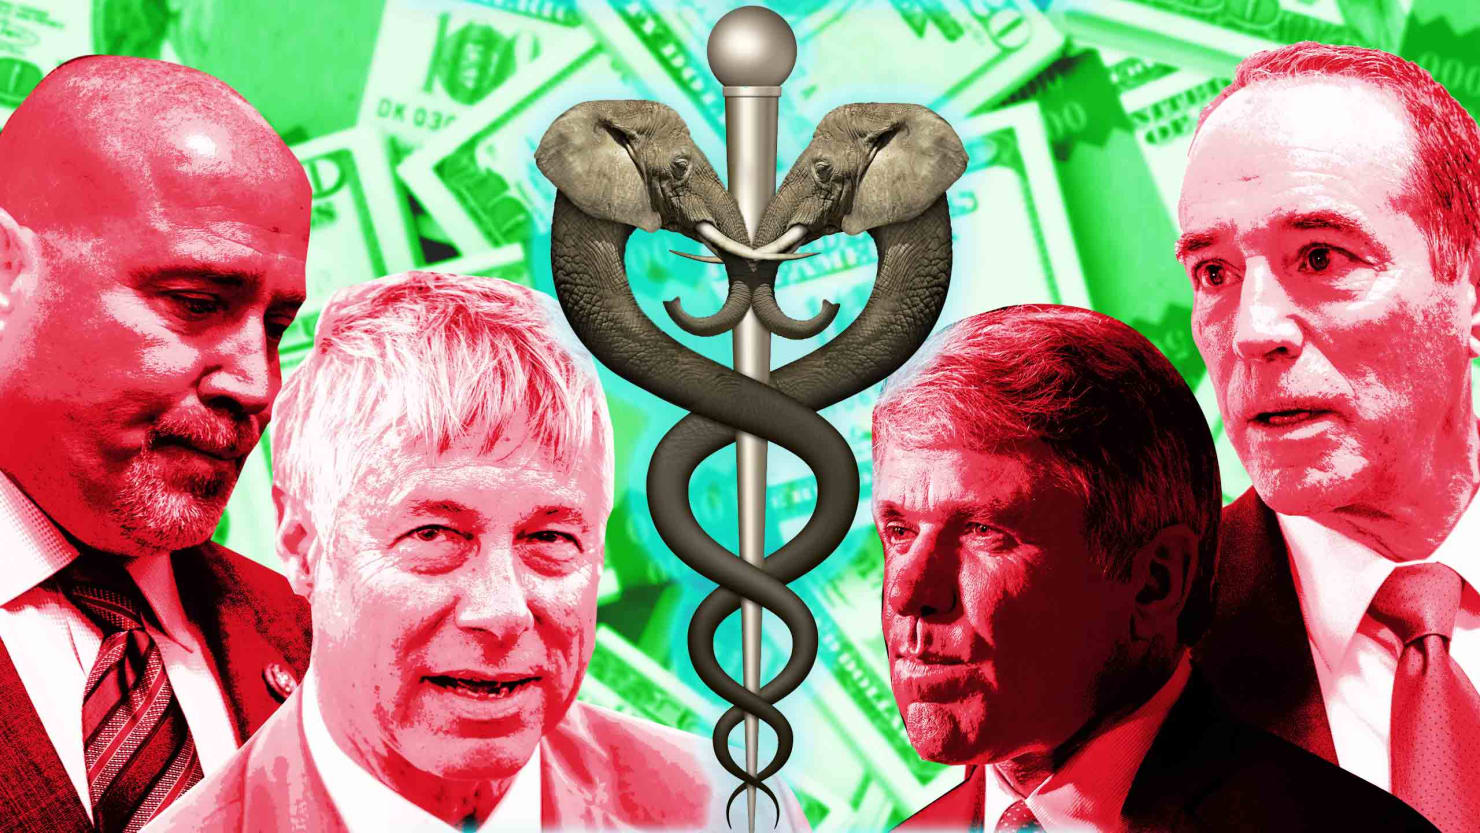 pro trumpcare republicans owned millions in health care stock